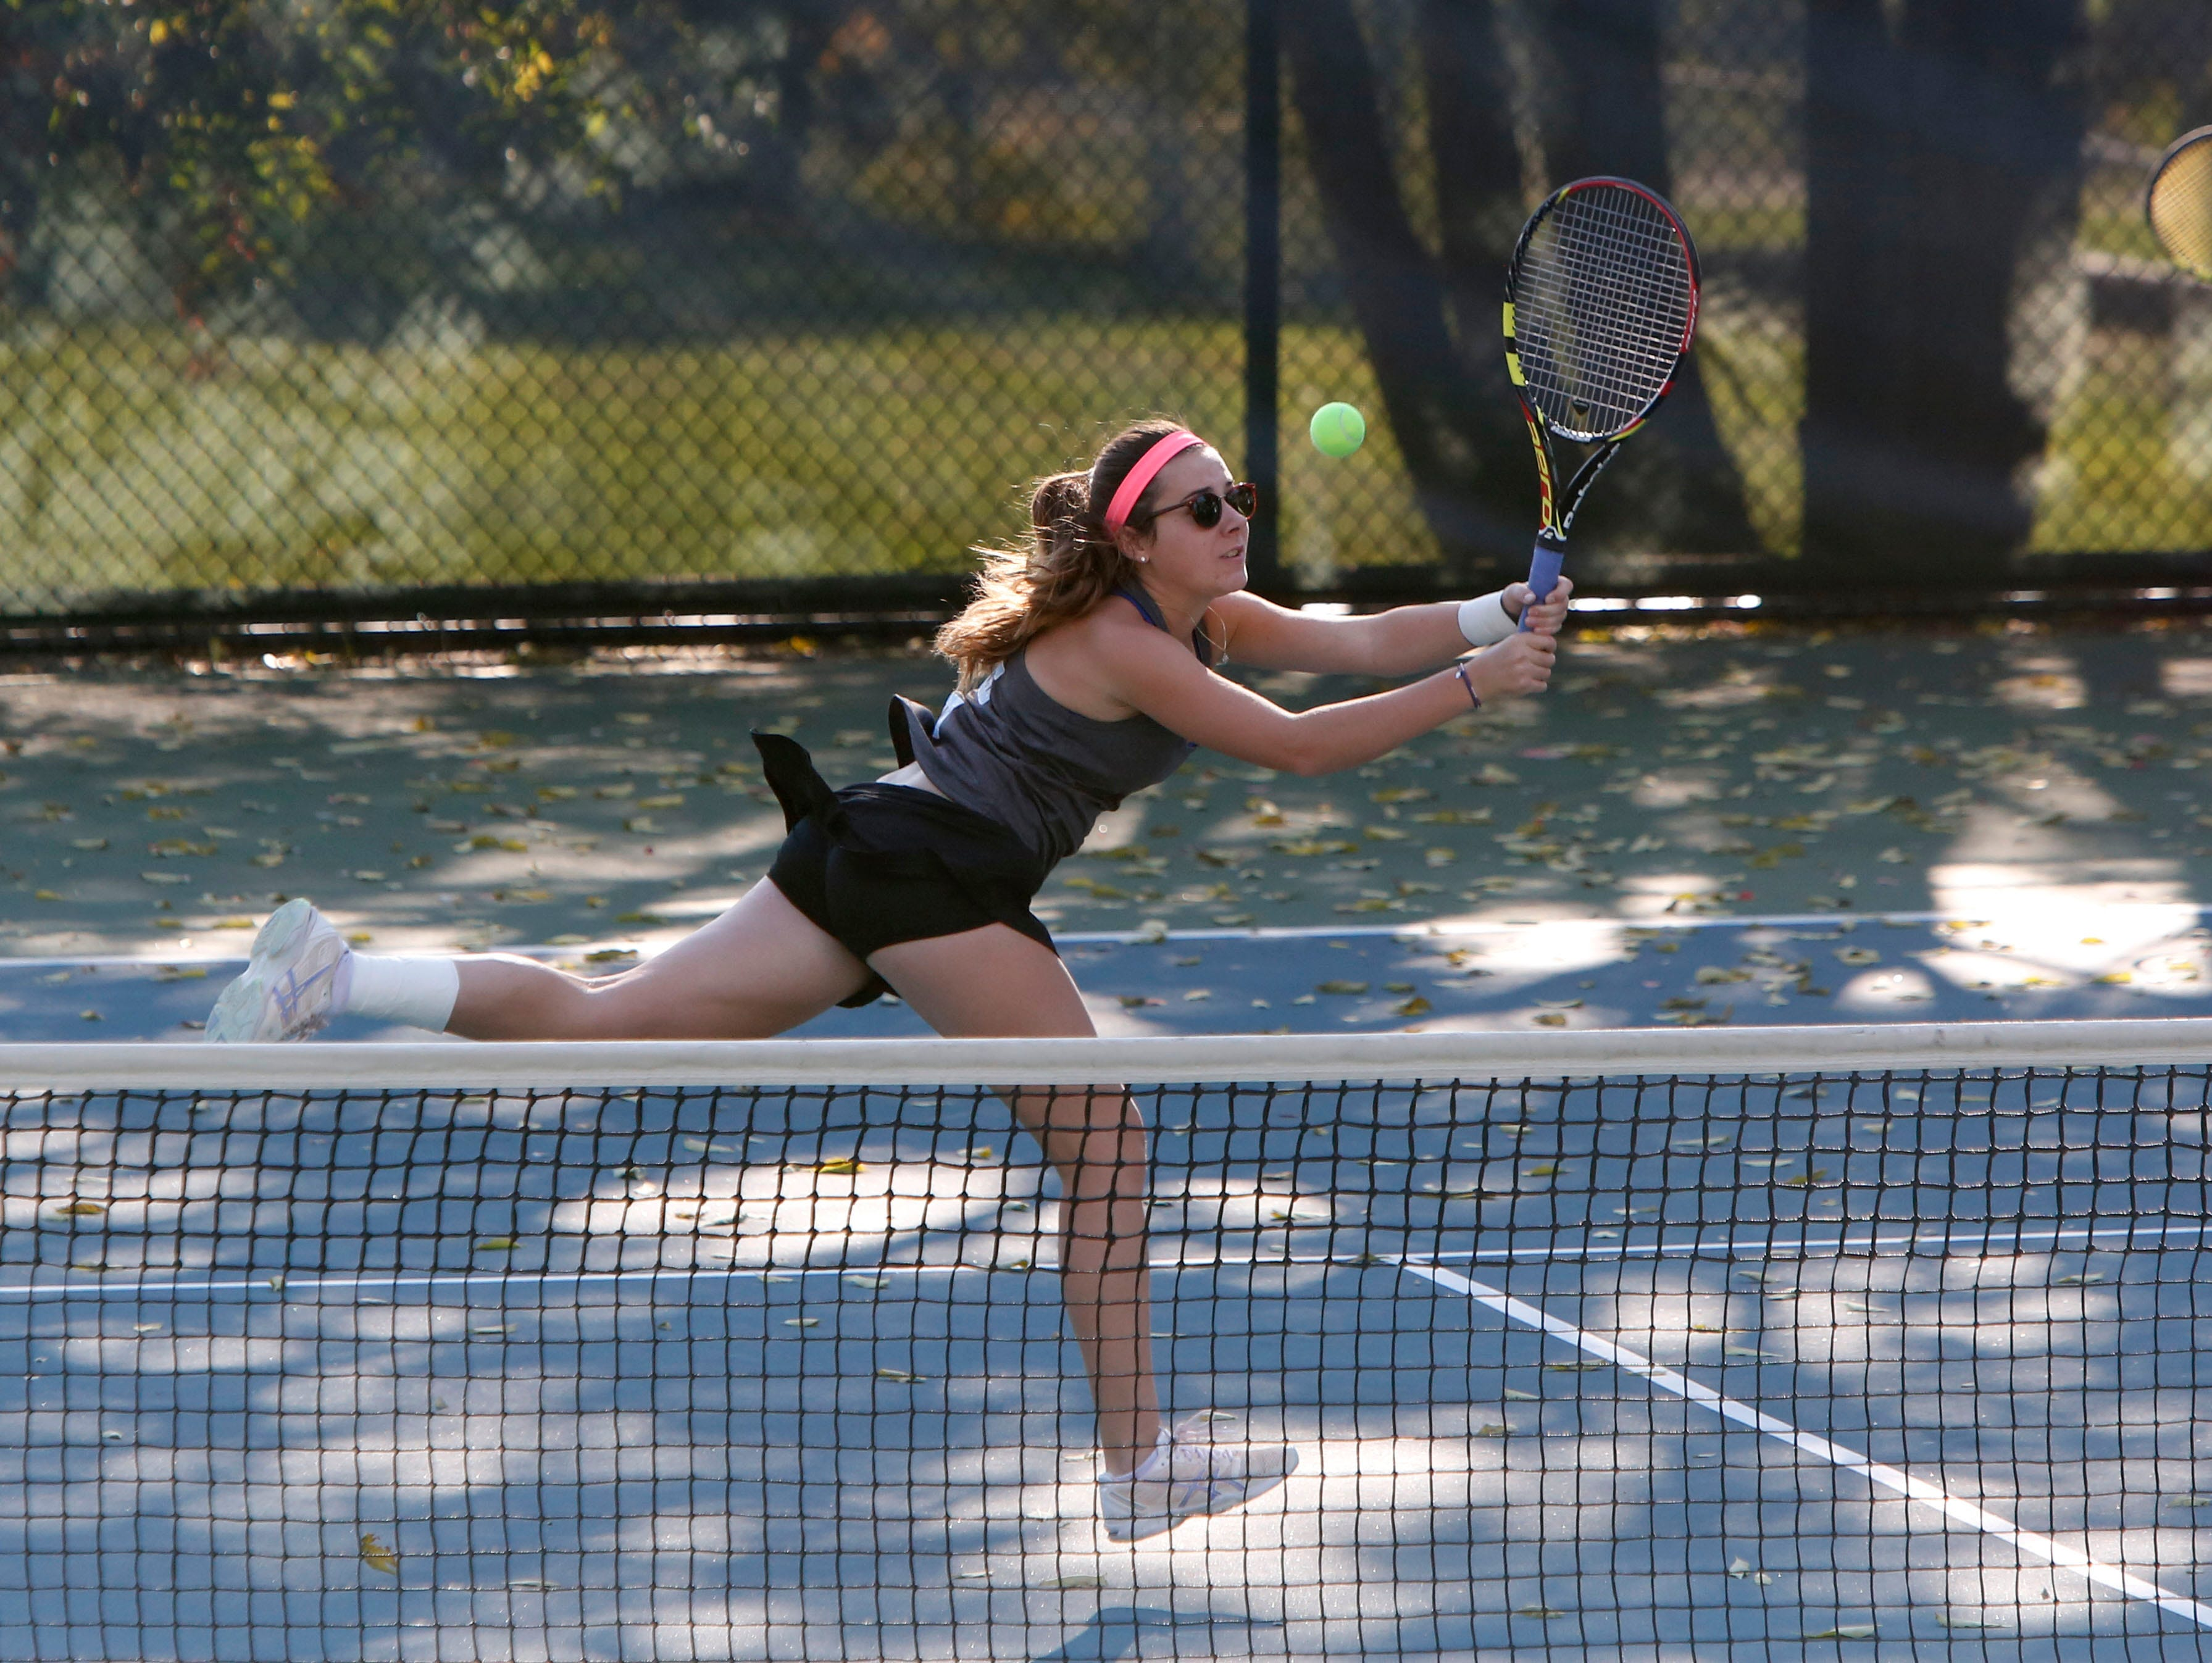 Rye Neck's Clemence Balzano returns the ball as teammate Mizuki Shionoya looks on in a doubles match against Bronxville's Katharine Frost and Eva Dani during the Conference III tennis tournament Oct. 15, 2015 at Edgemont High School in Scarsdale.